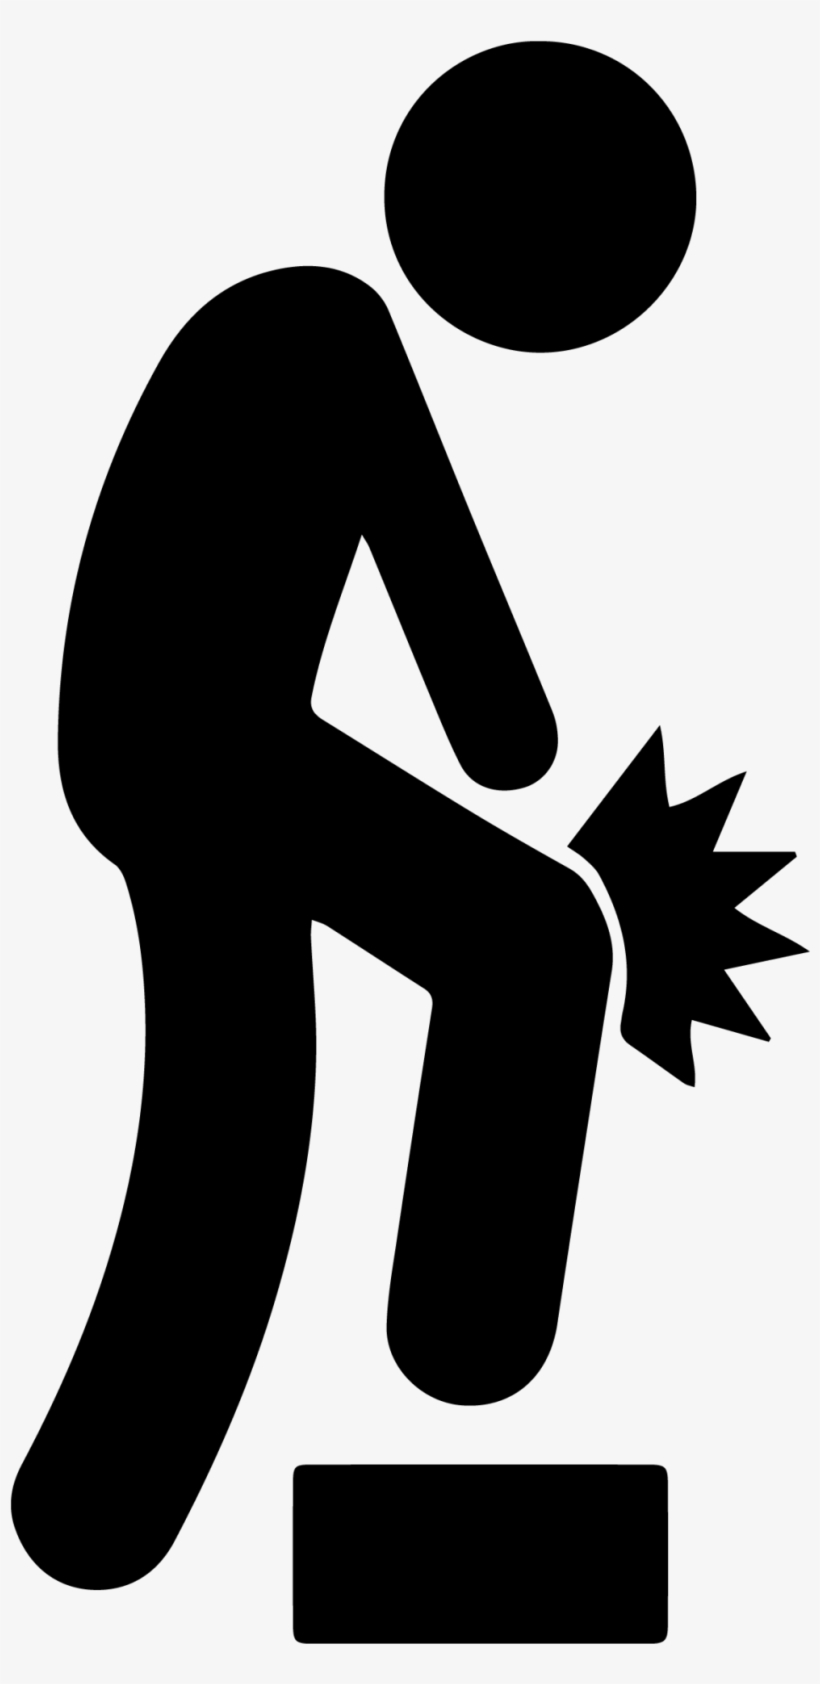 Traffic sign png image. Volleyball clipart injury